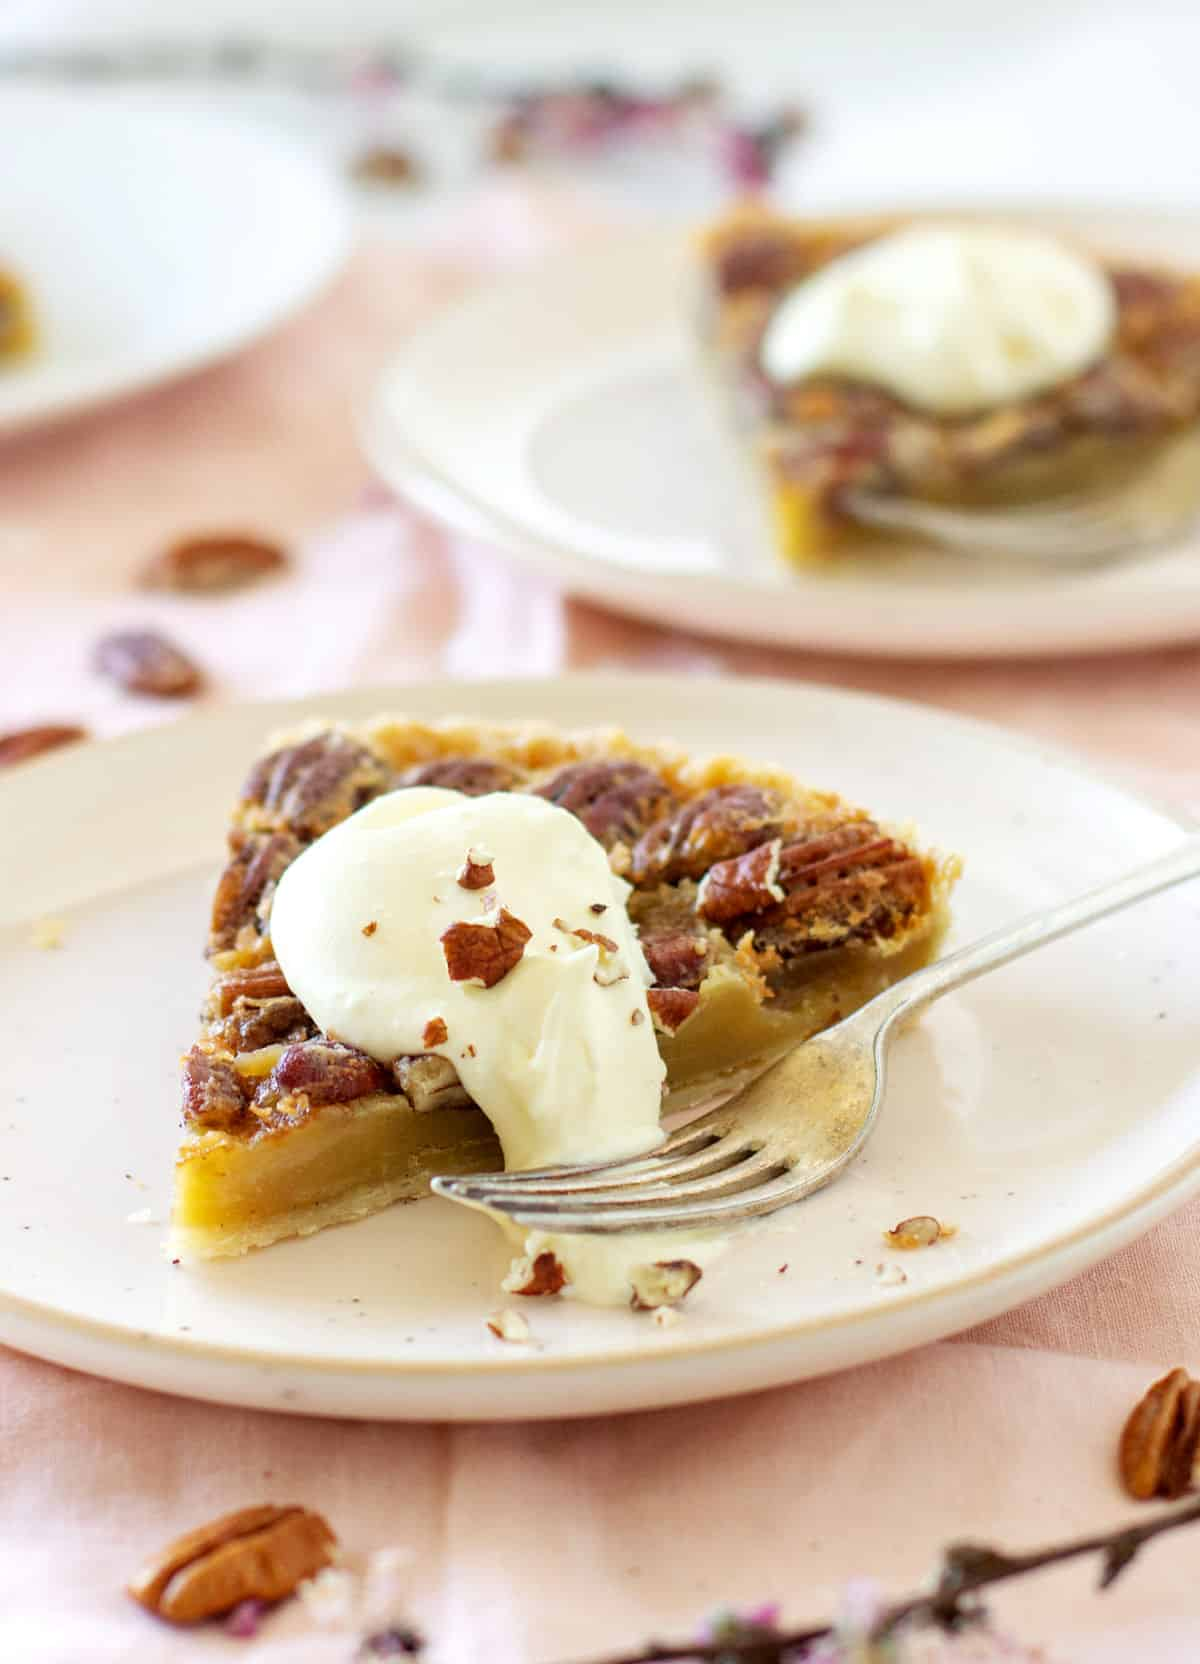 Slices of pecan pie with whipped cream on pink plates and embroidered tablecloth